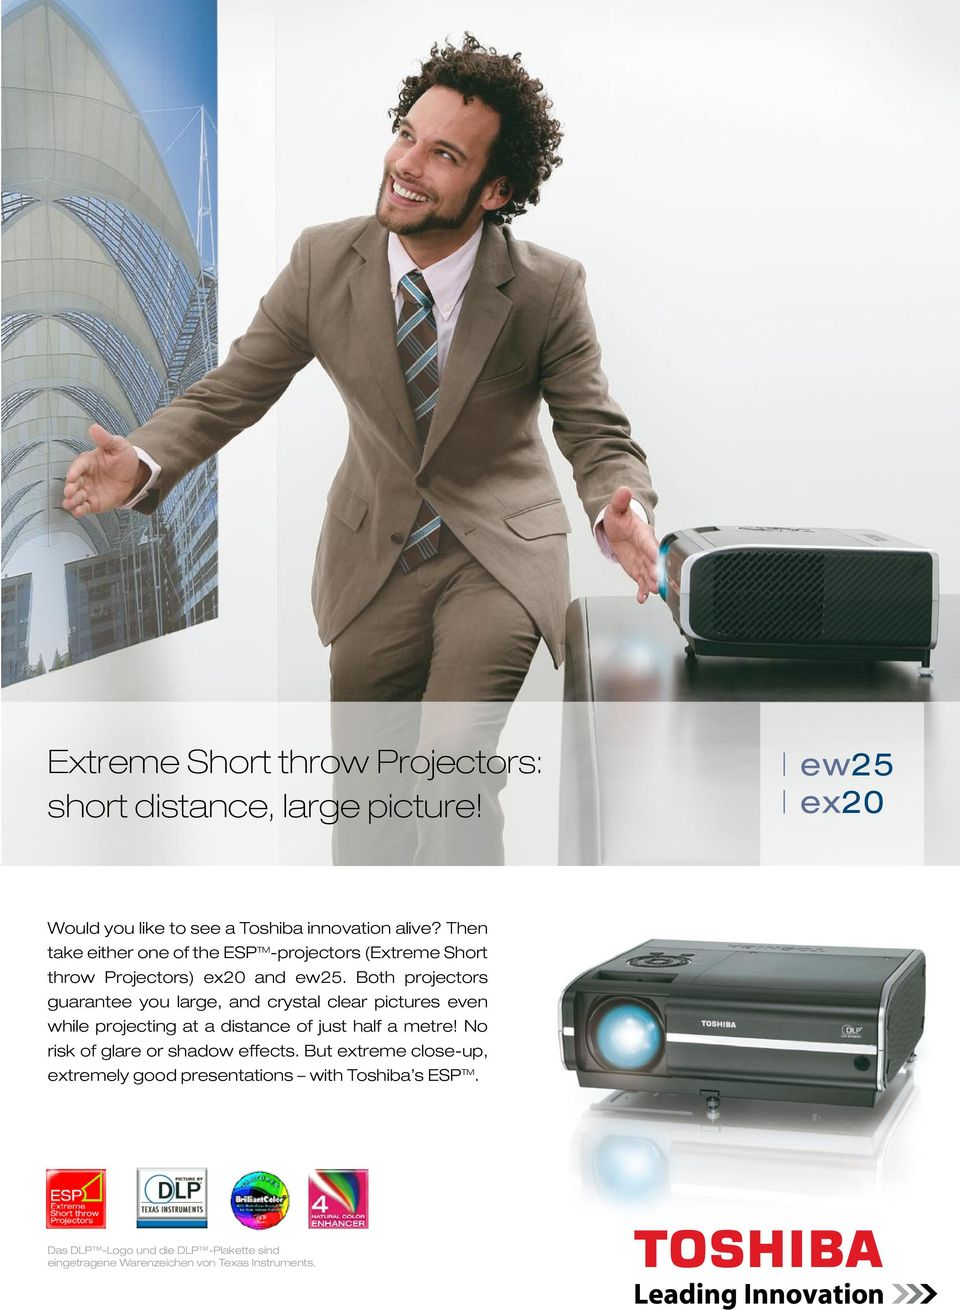 Both projectors guarantee you large, and crystal clear pictures even while projecting at a distance of just half a metre!